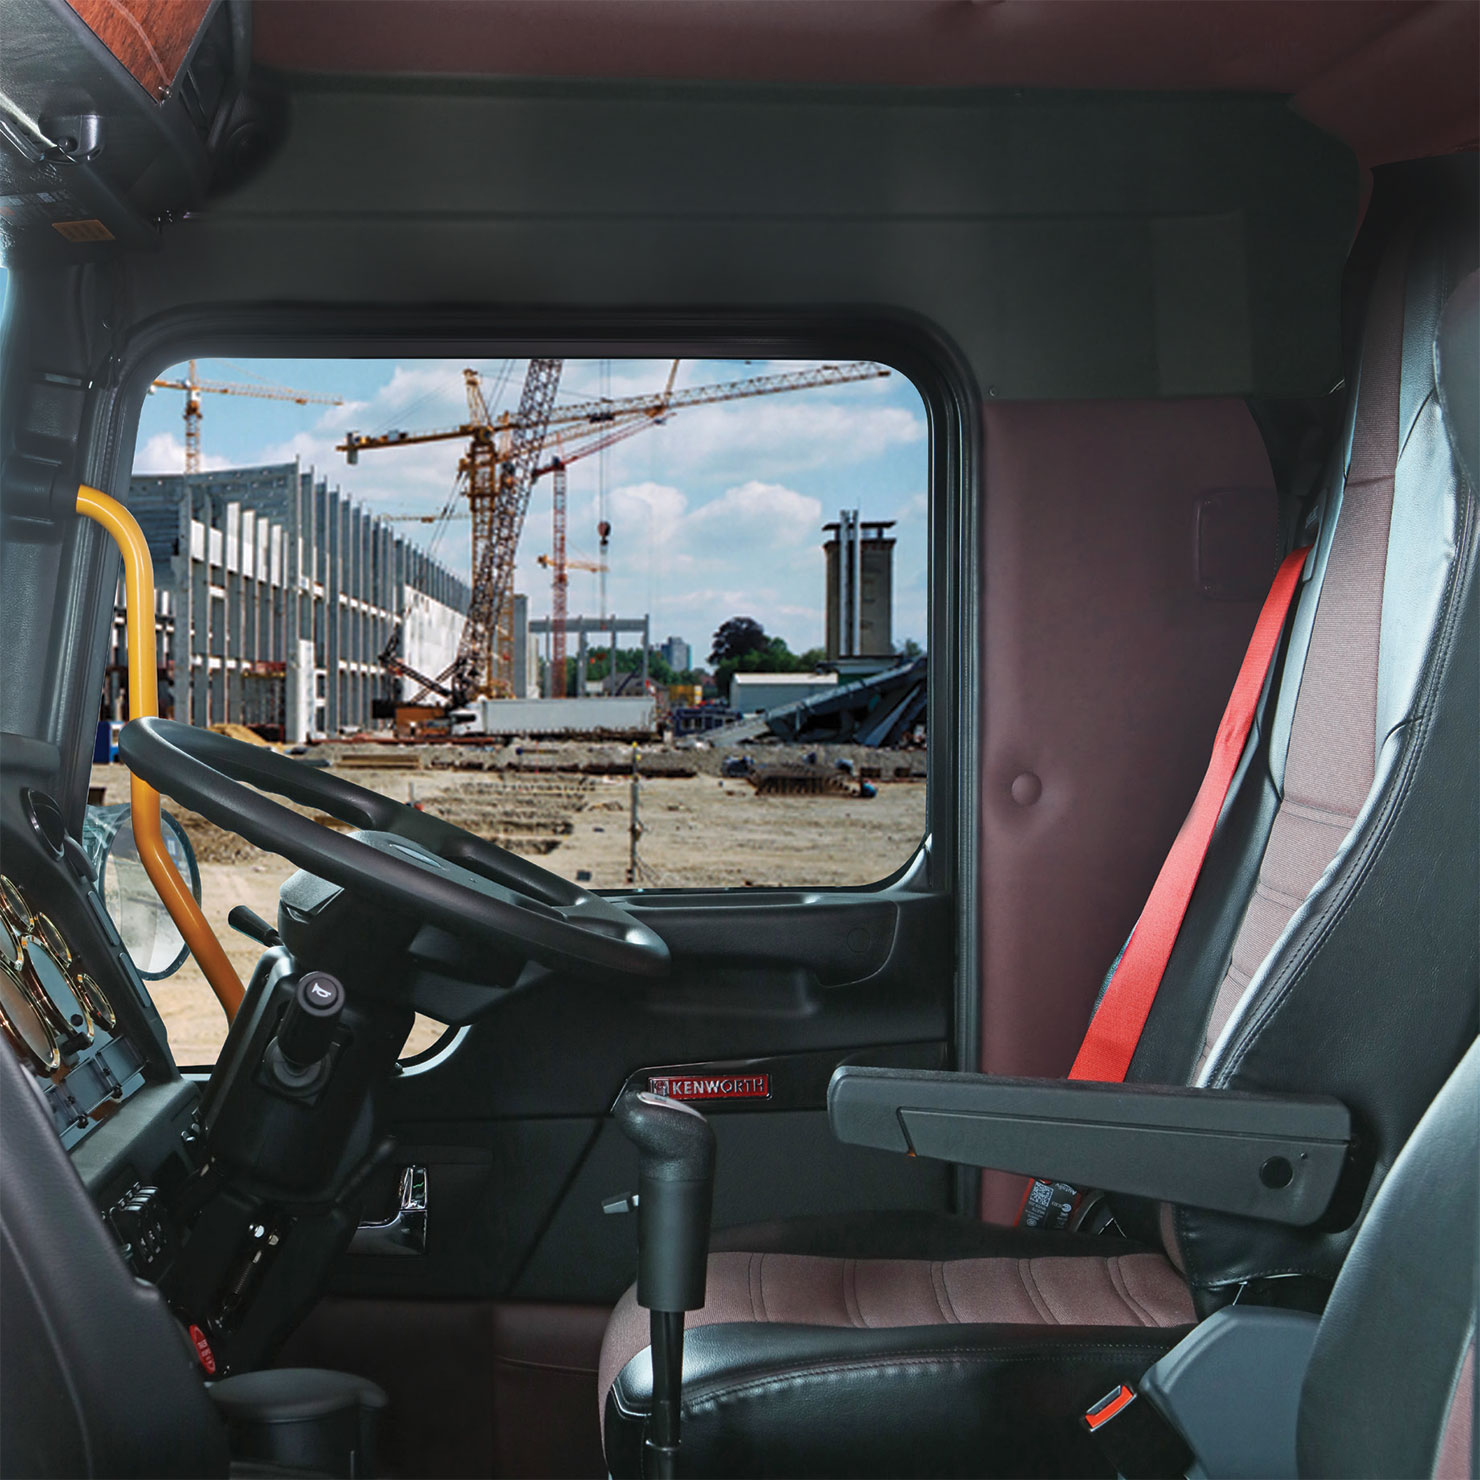 T359a Kenworth Australia K300 Fuse Box The Wrap Around Instrument Panel Allows Easy Access To Controls Featuring An Adjustable Steering Column And A Smart Wheel With Fingertip For